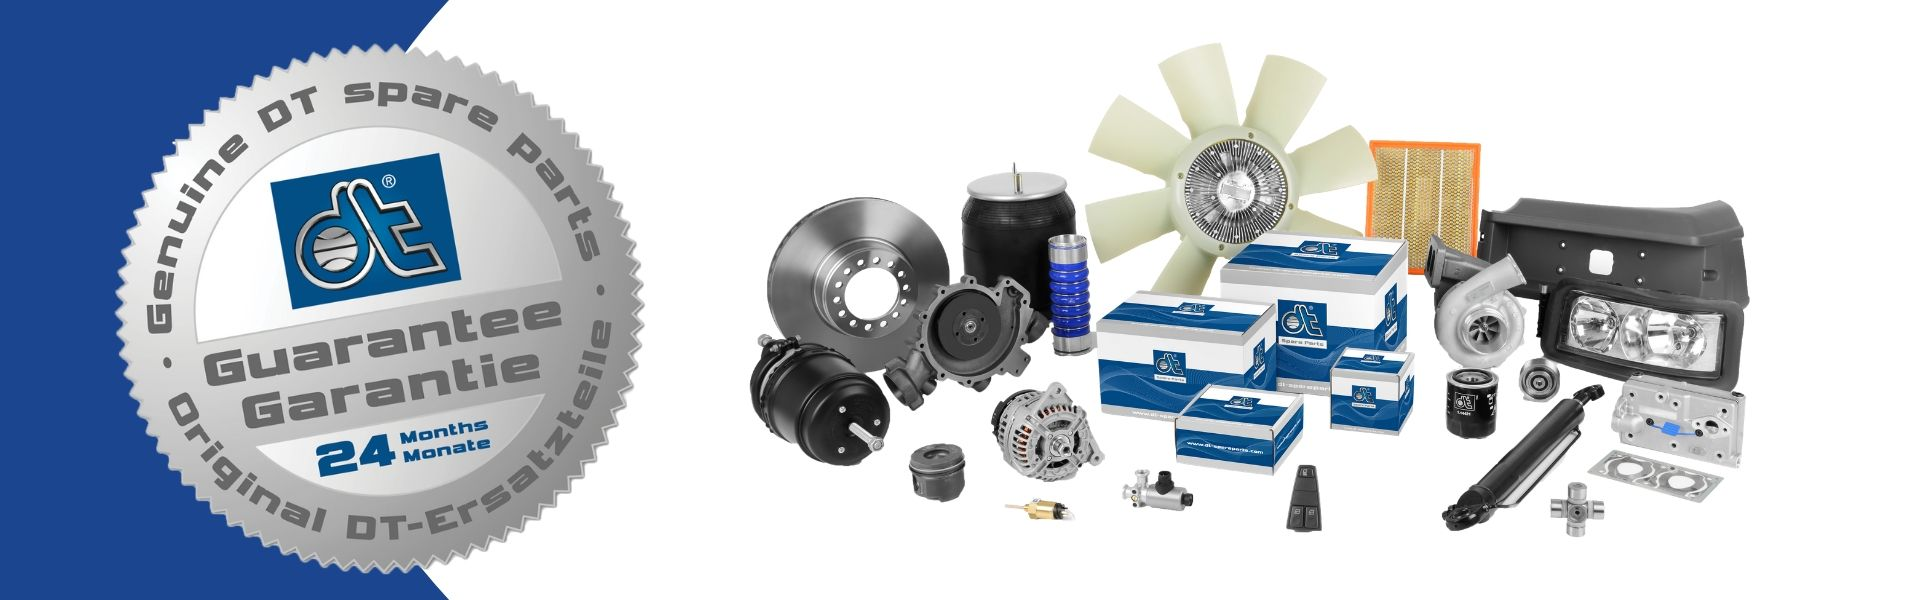 SAC Replacement Truck Parts | DT Spare Parts